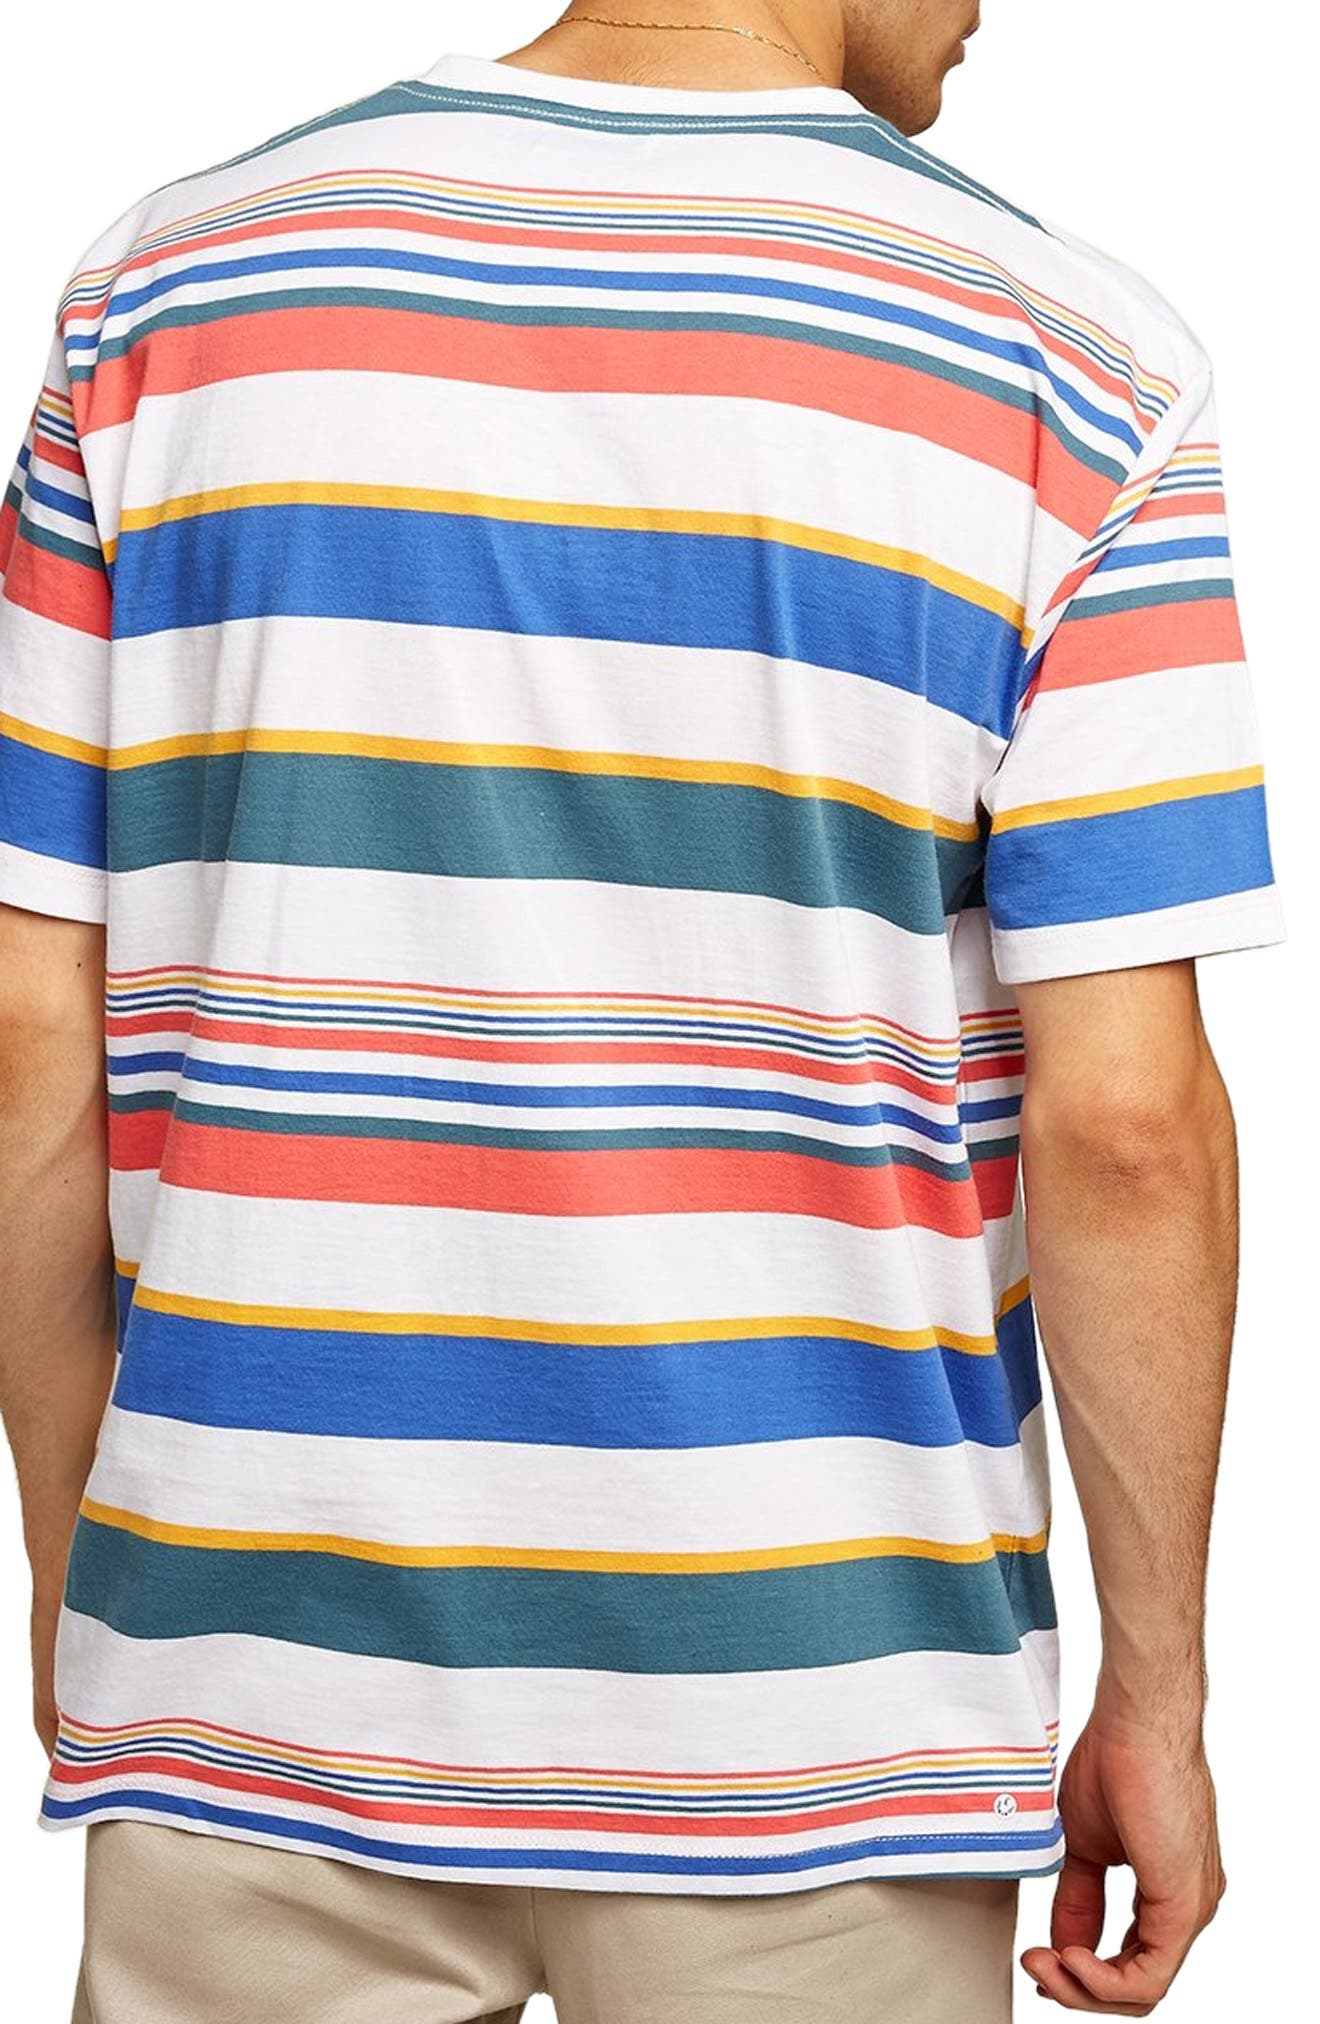 Rainbow Stripe T-Shirt,                             Alternate thumbnail 2, color,                             WHITE MULTI